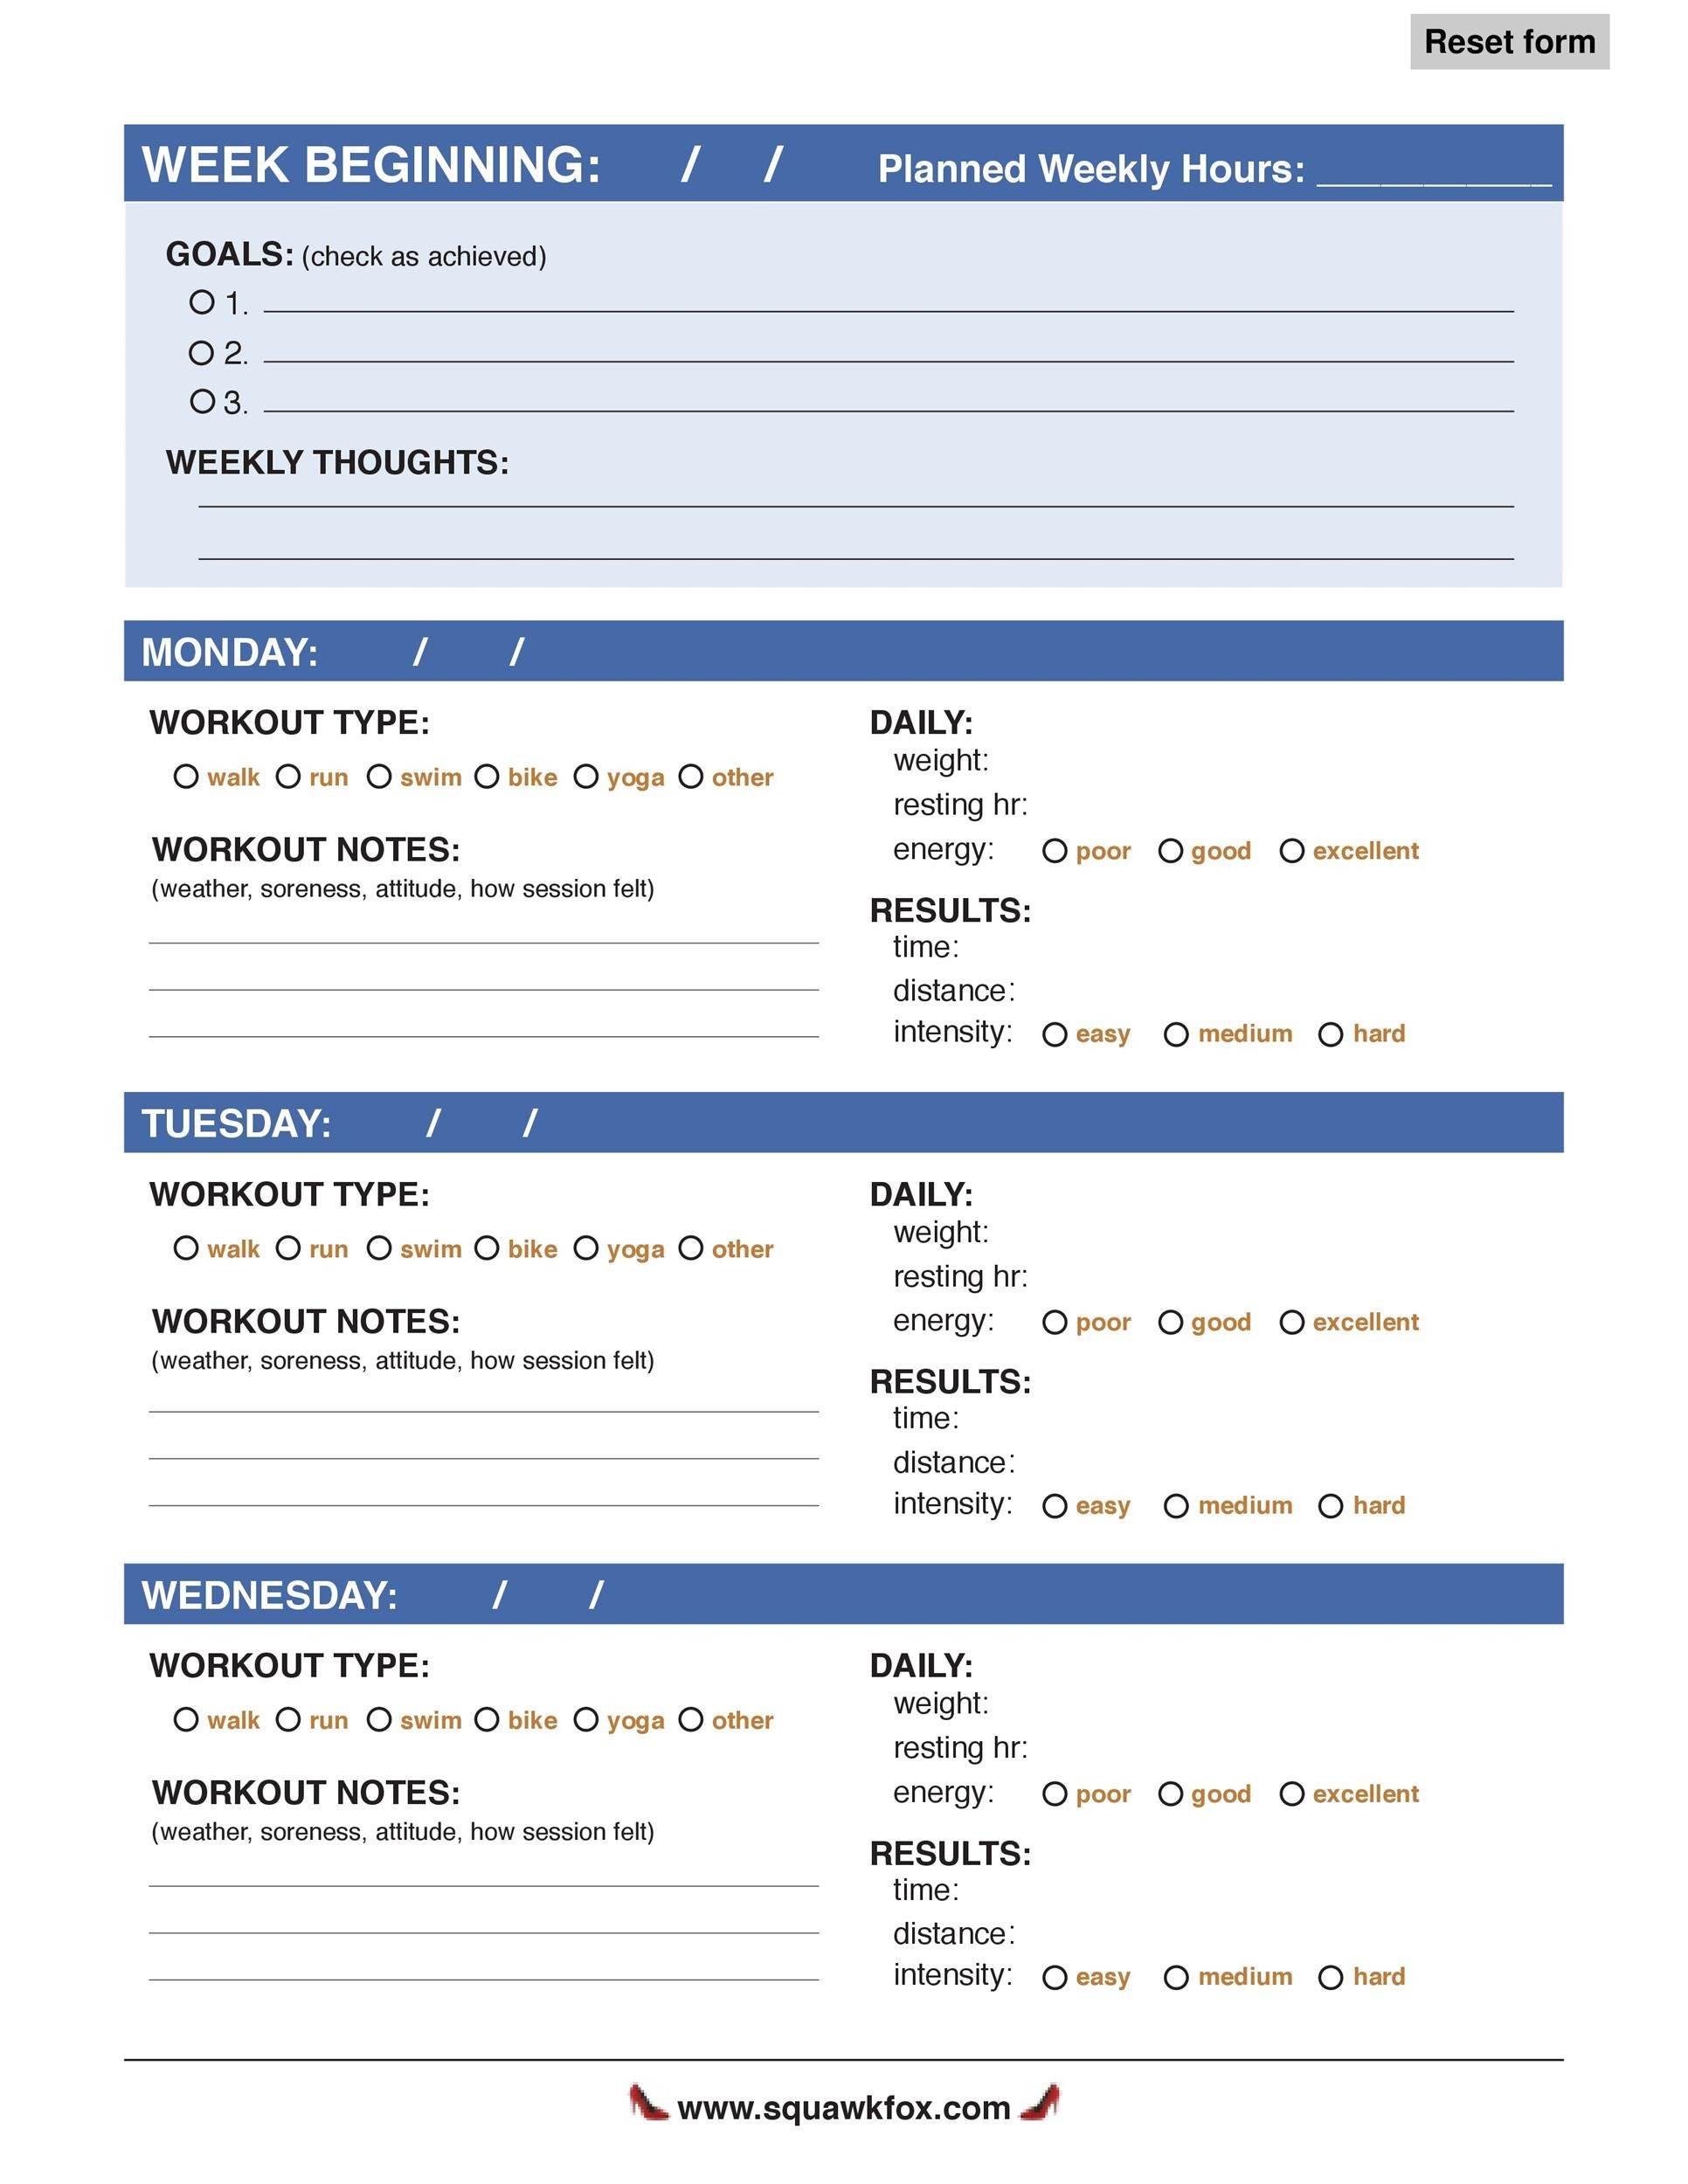 Workout Calendar Template | 40 Effective Workout Log Calendar Templates ᐅ Template Lab